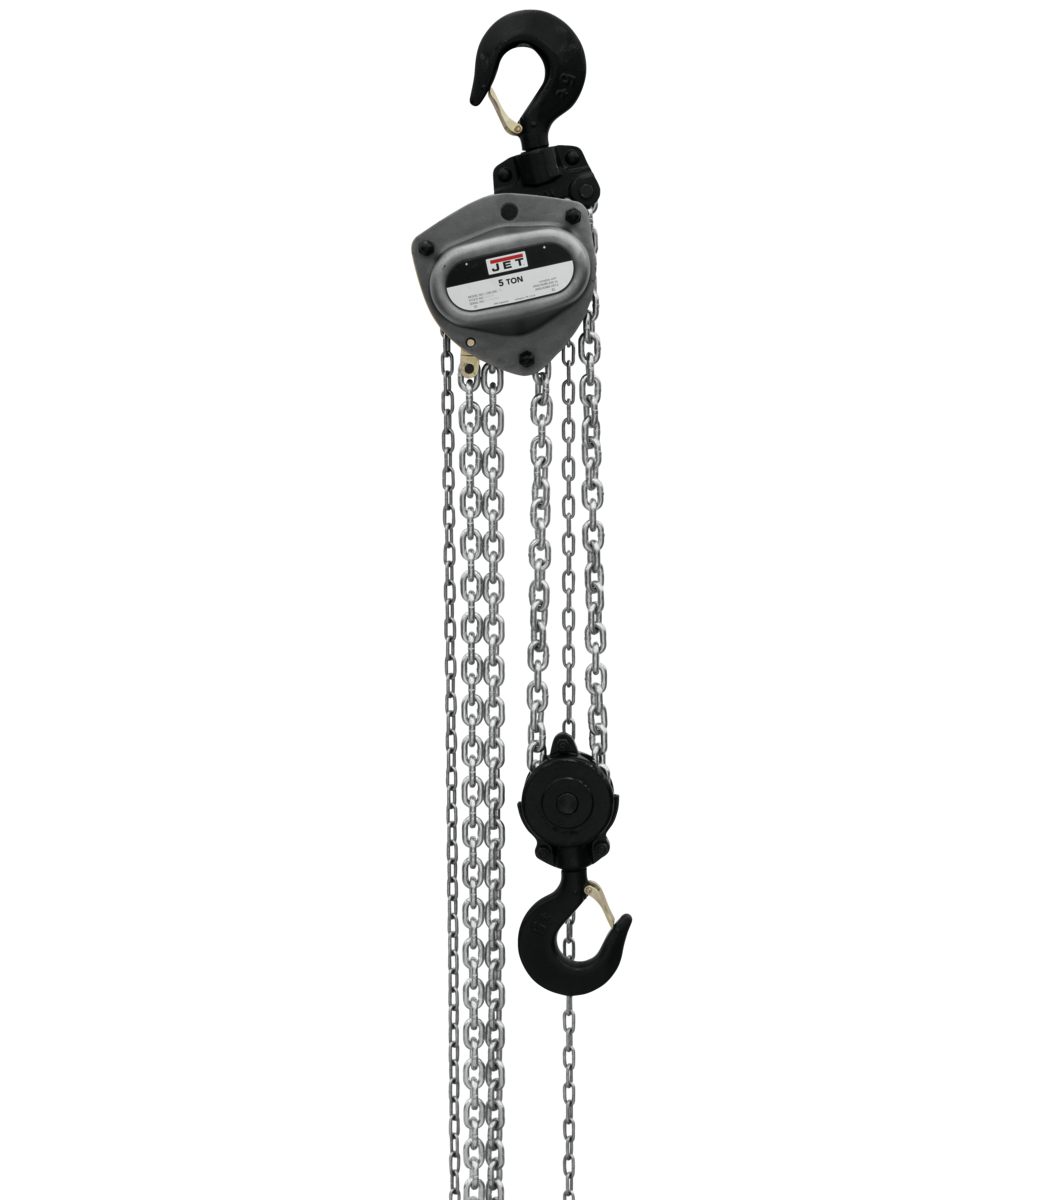 L-100-500WO-15, 5-Ton Hand Chain Hoist With 15' Lift & Overload Protection